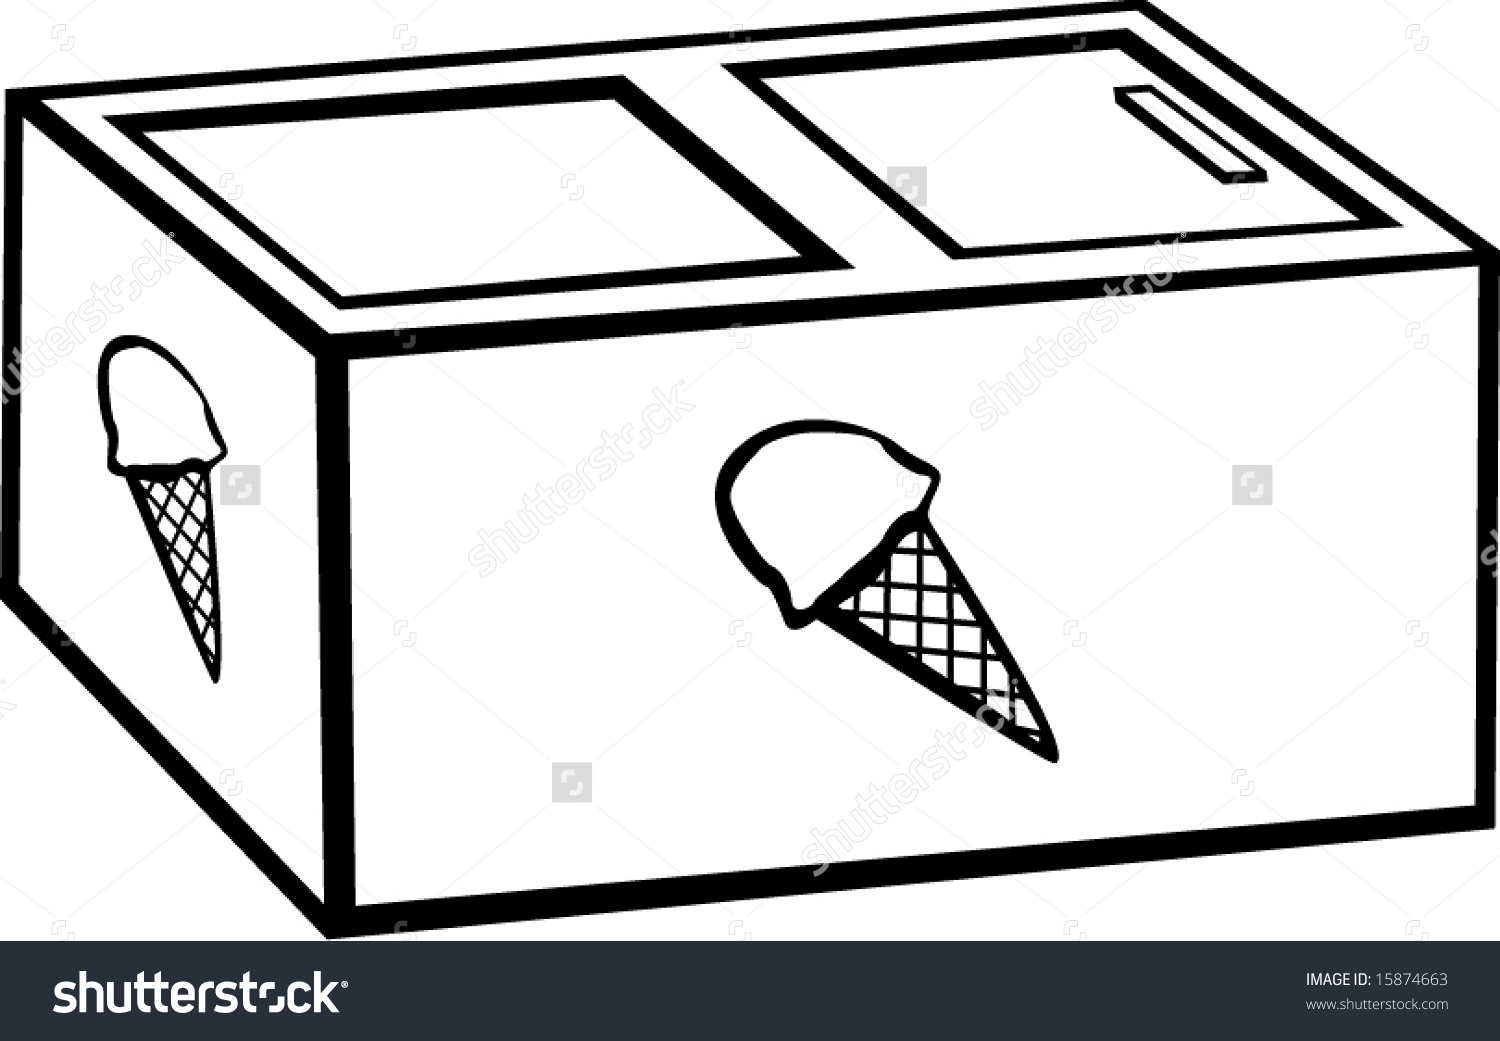 Ice Cream Freezer Clip Art.